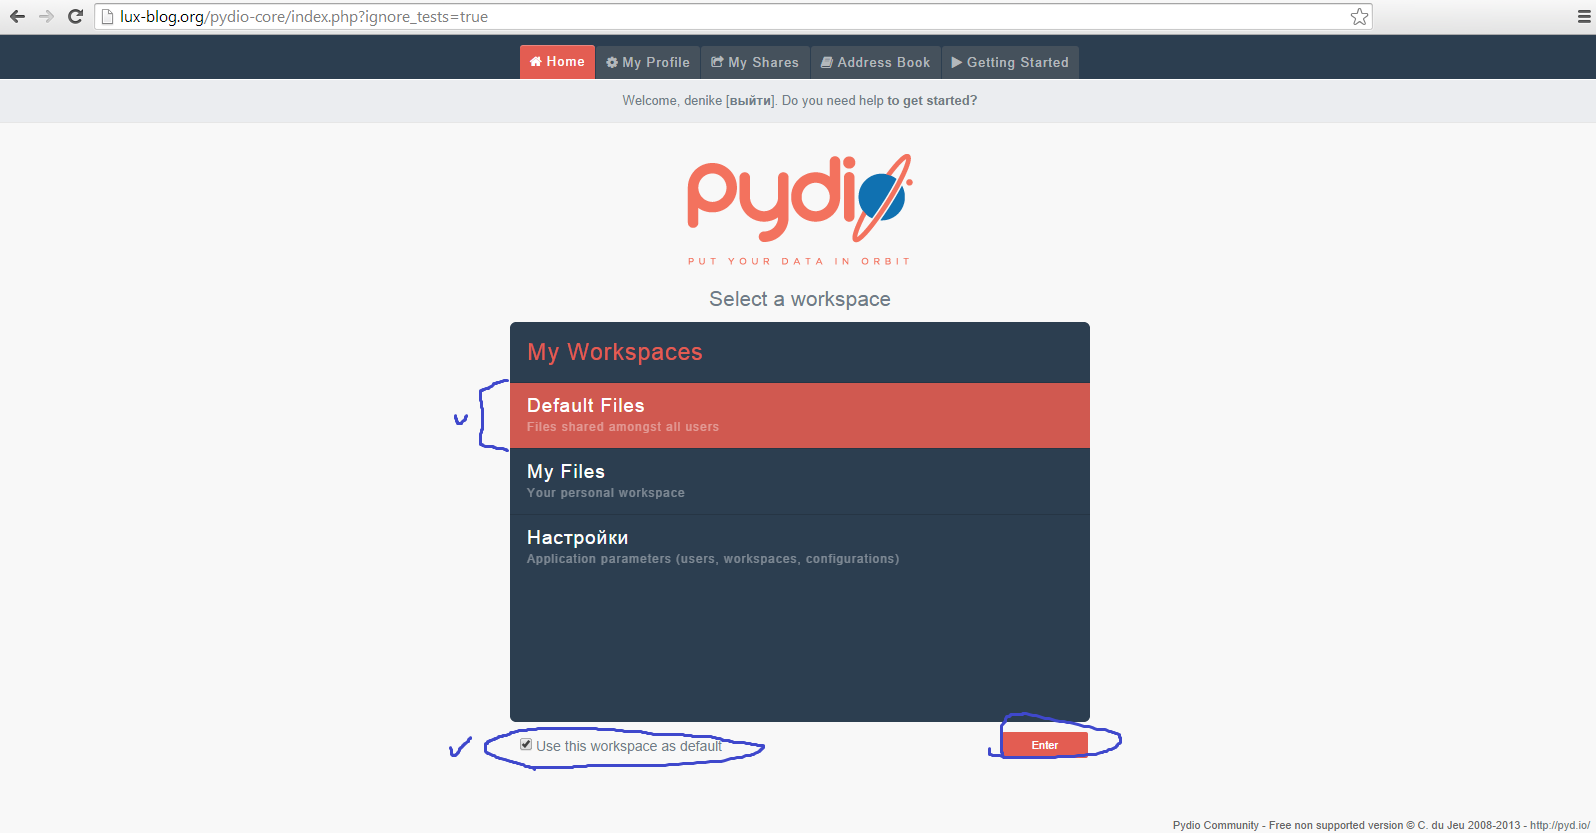 Pydio, file manager at lux-blog